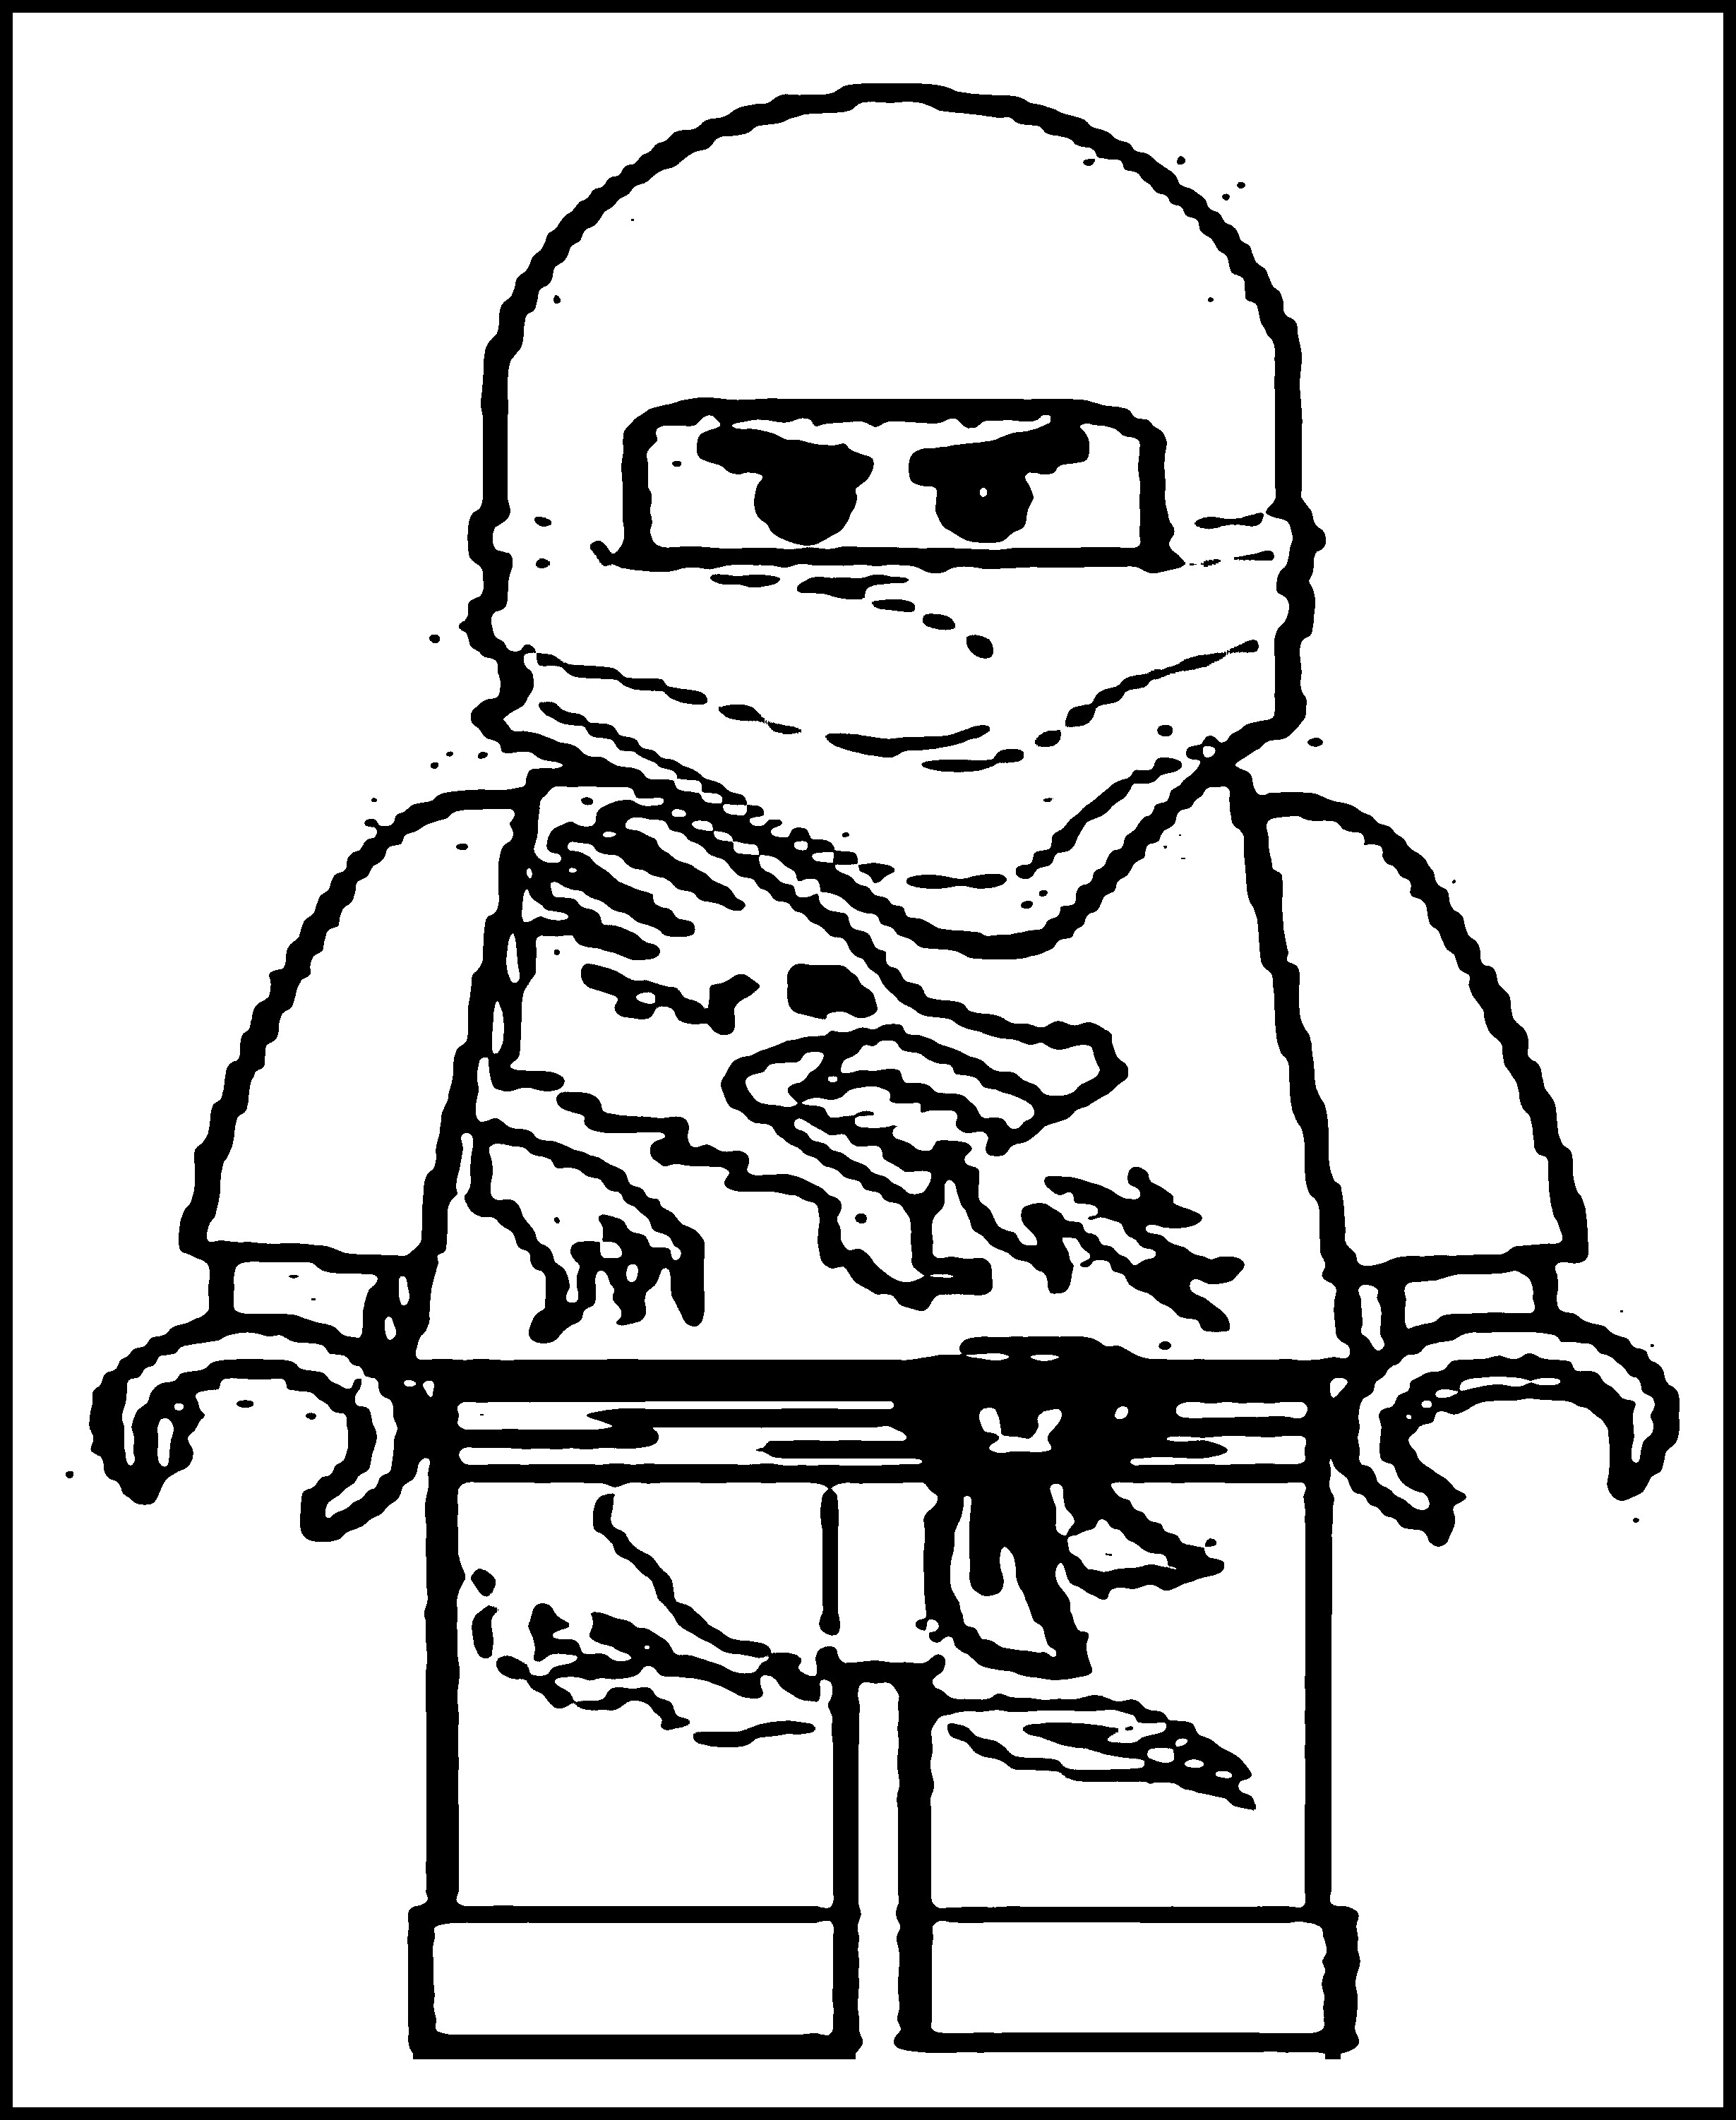 Image Result For Lego Ninjago Snake Coloring Pages